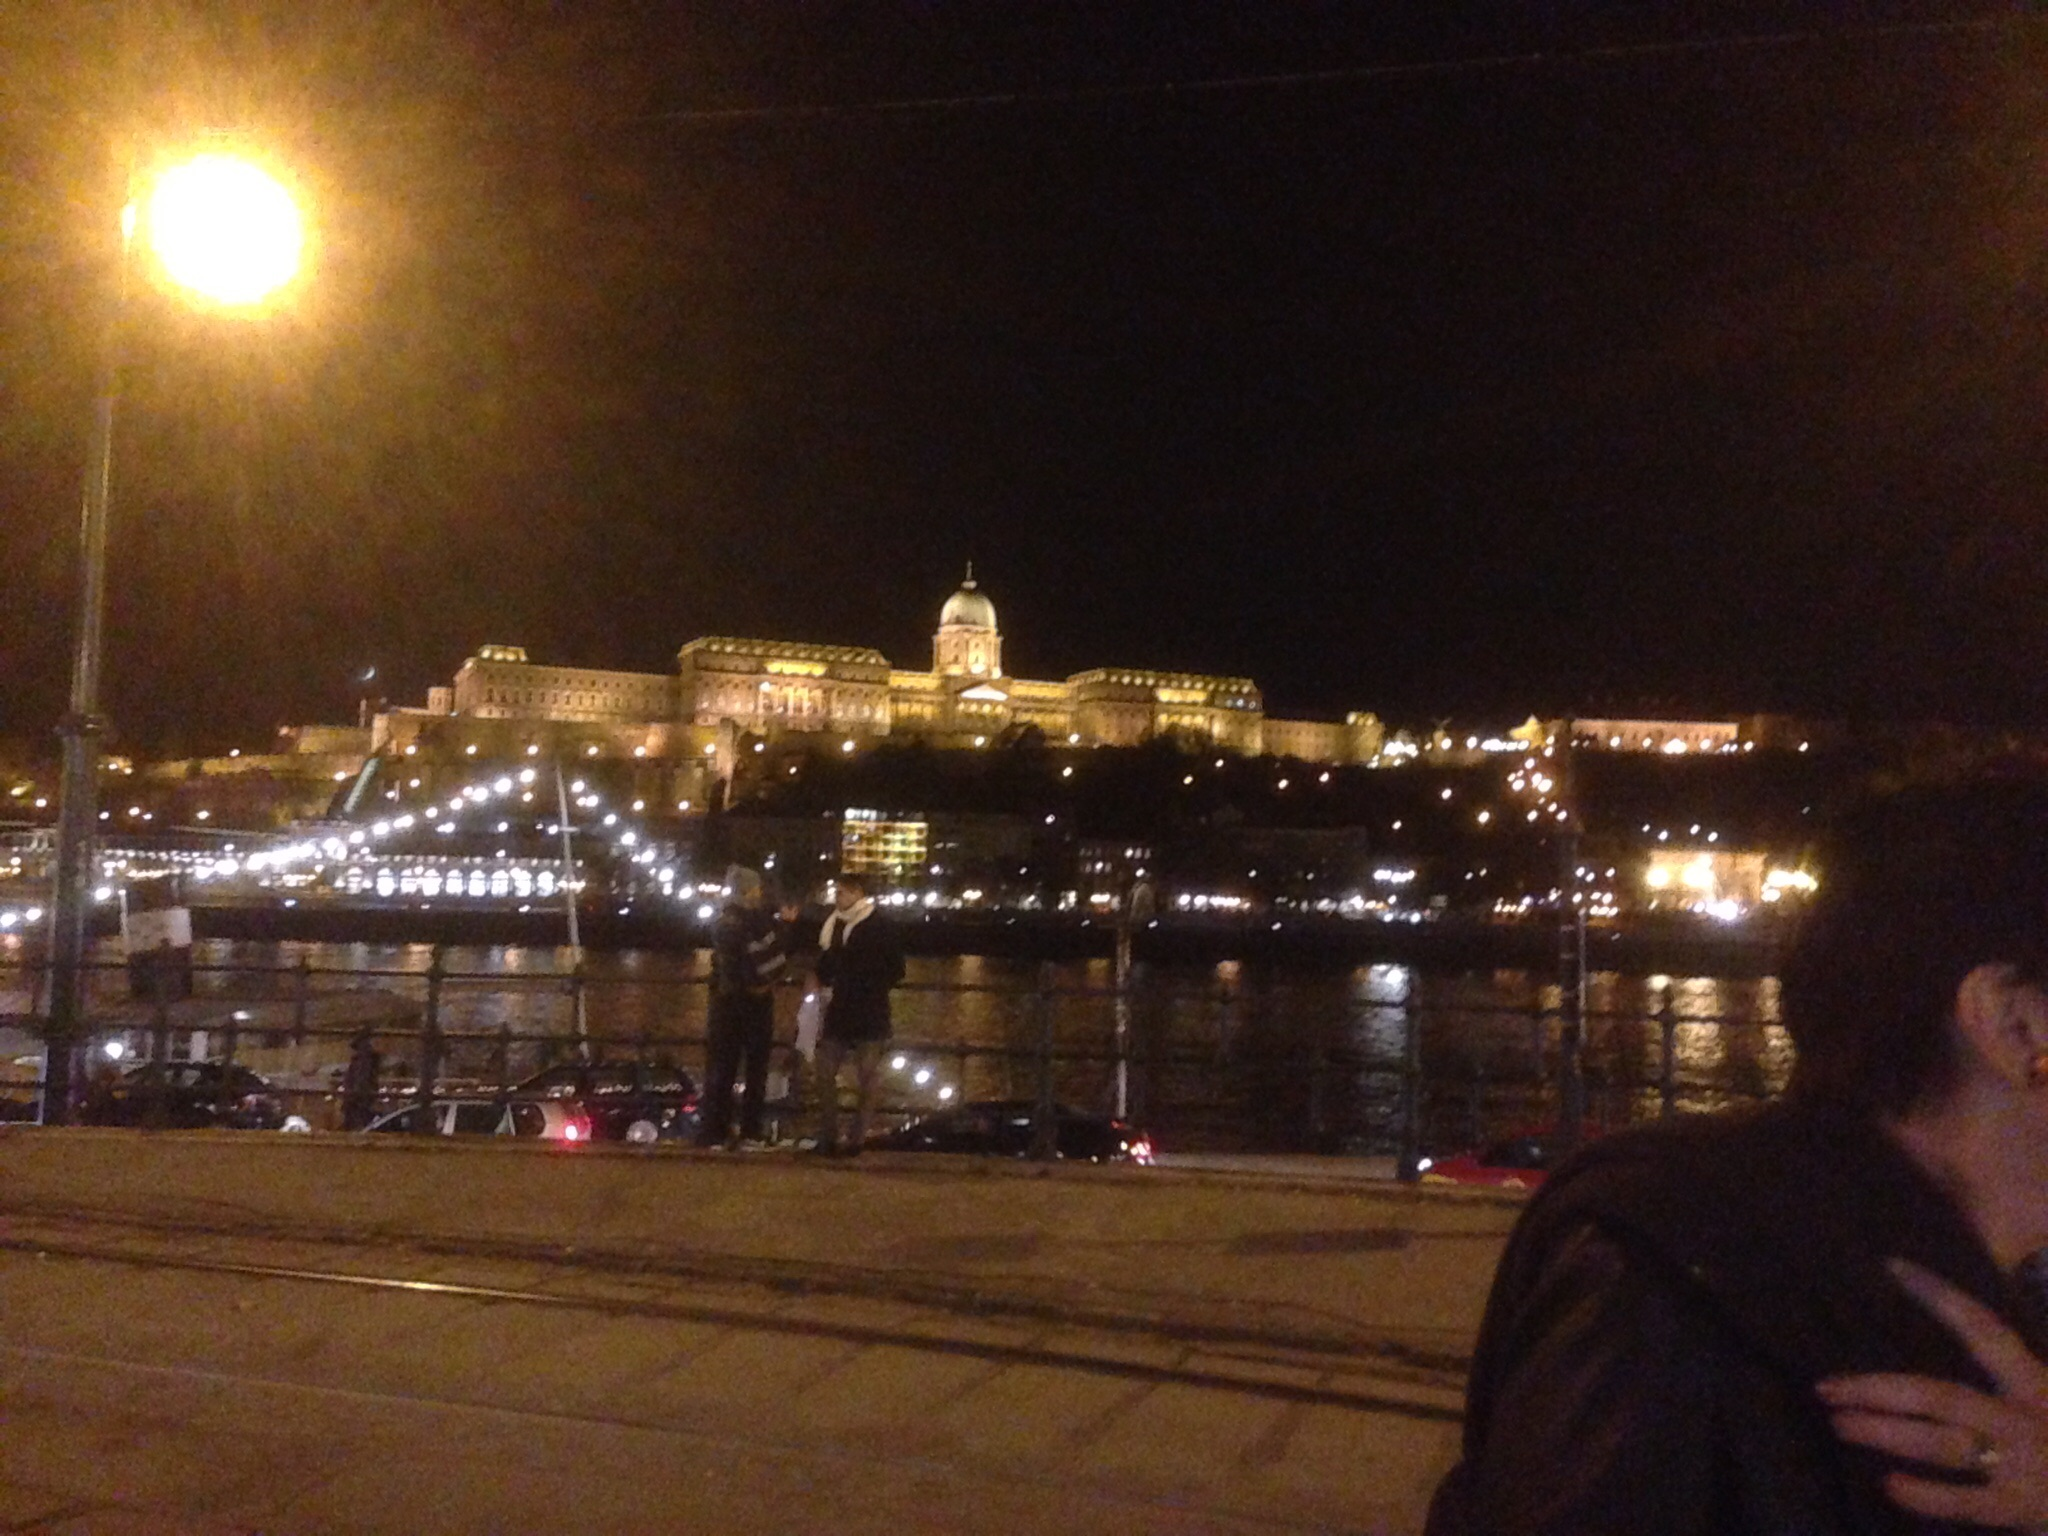 By the time we returned to Budapest it was fully dark, but it gave us a chance to get a photo of Buda Palace at night.